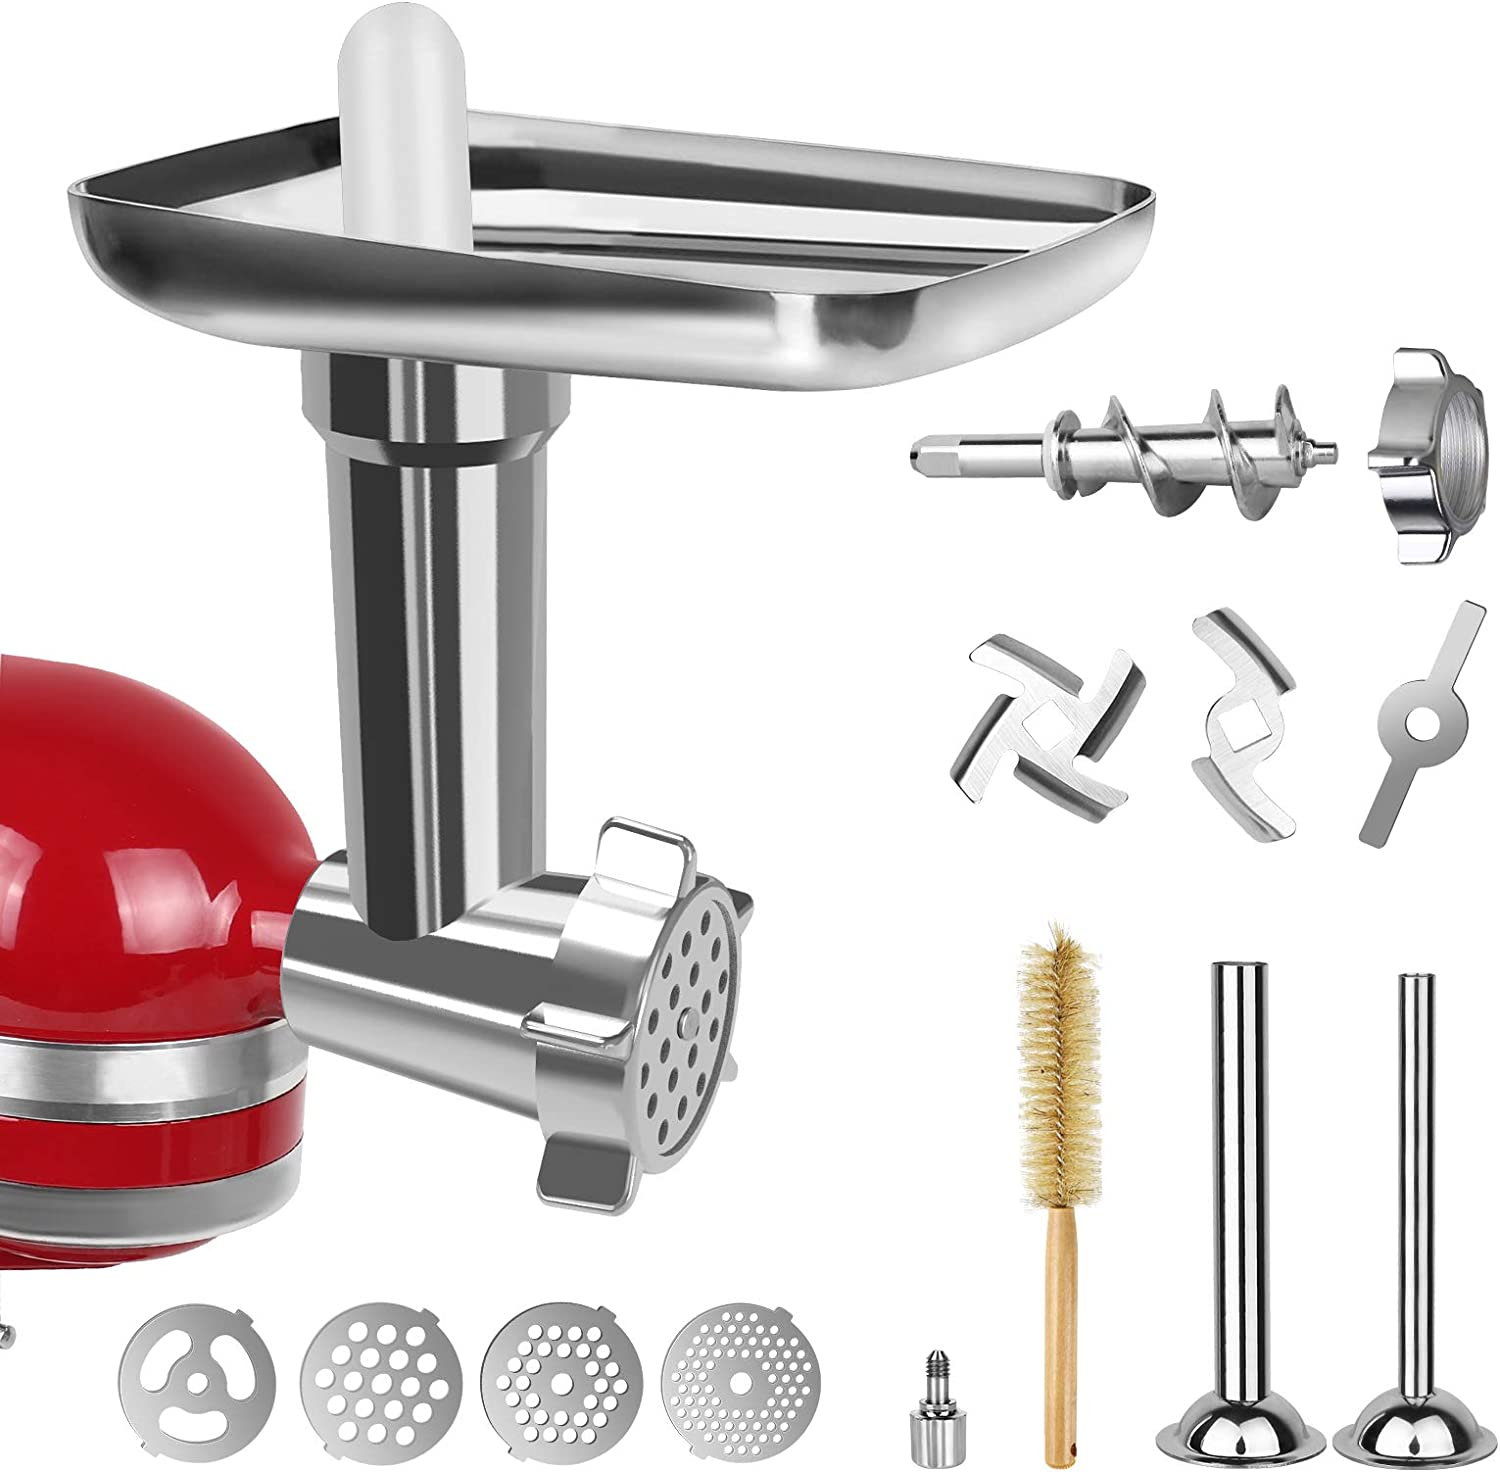 Borwakcr Metal Food Grinder Attachment for KitchenAid Stand Mixers, Includes Two Sausage Stuffer Tubes, Four Grinding Plates, Safe and Durable Meat Grinder Attachments, Perfect for KitchenAid Mixers